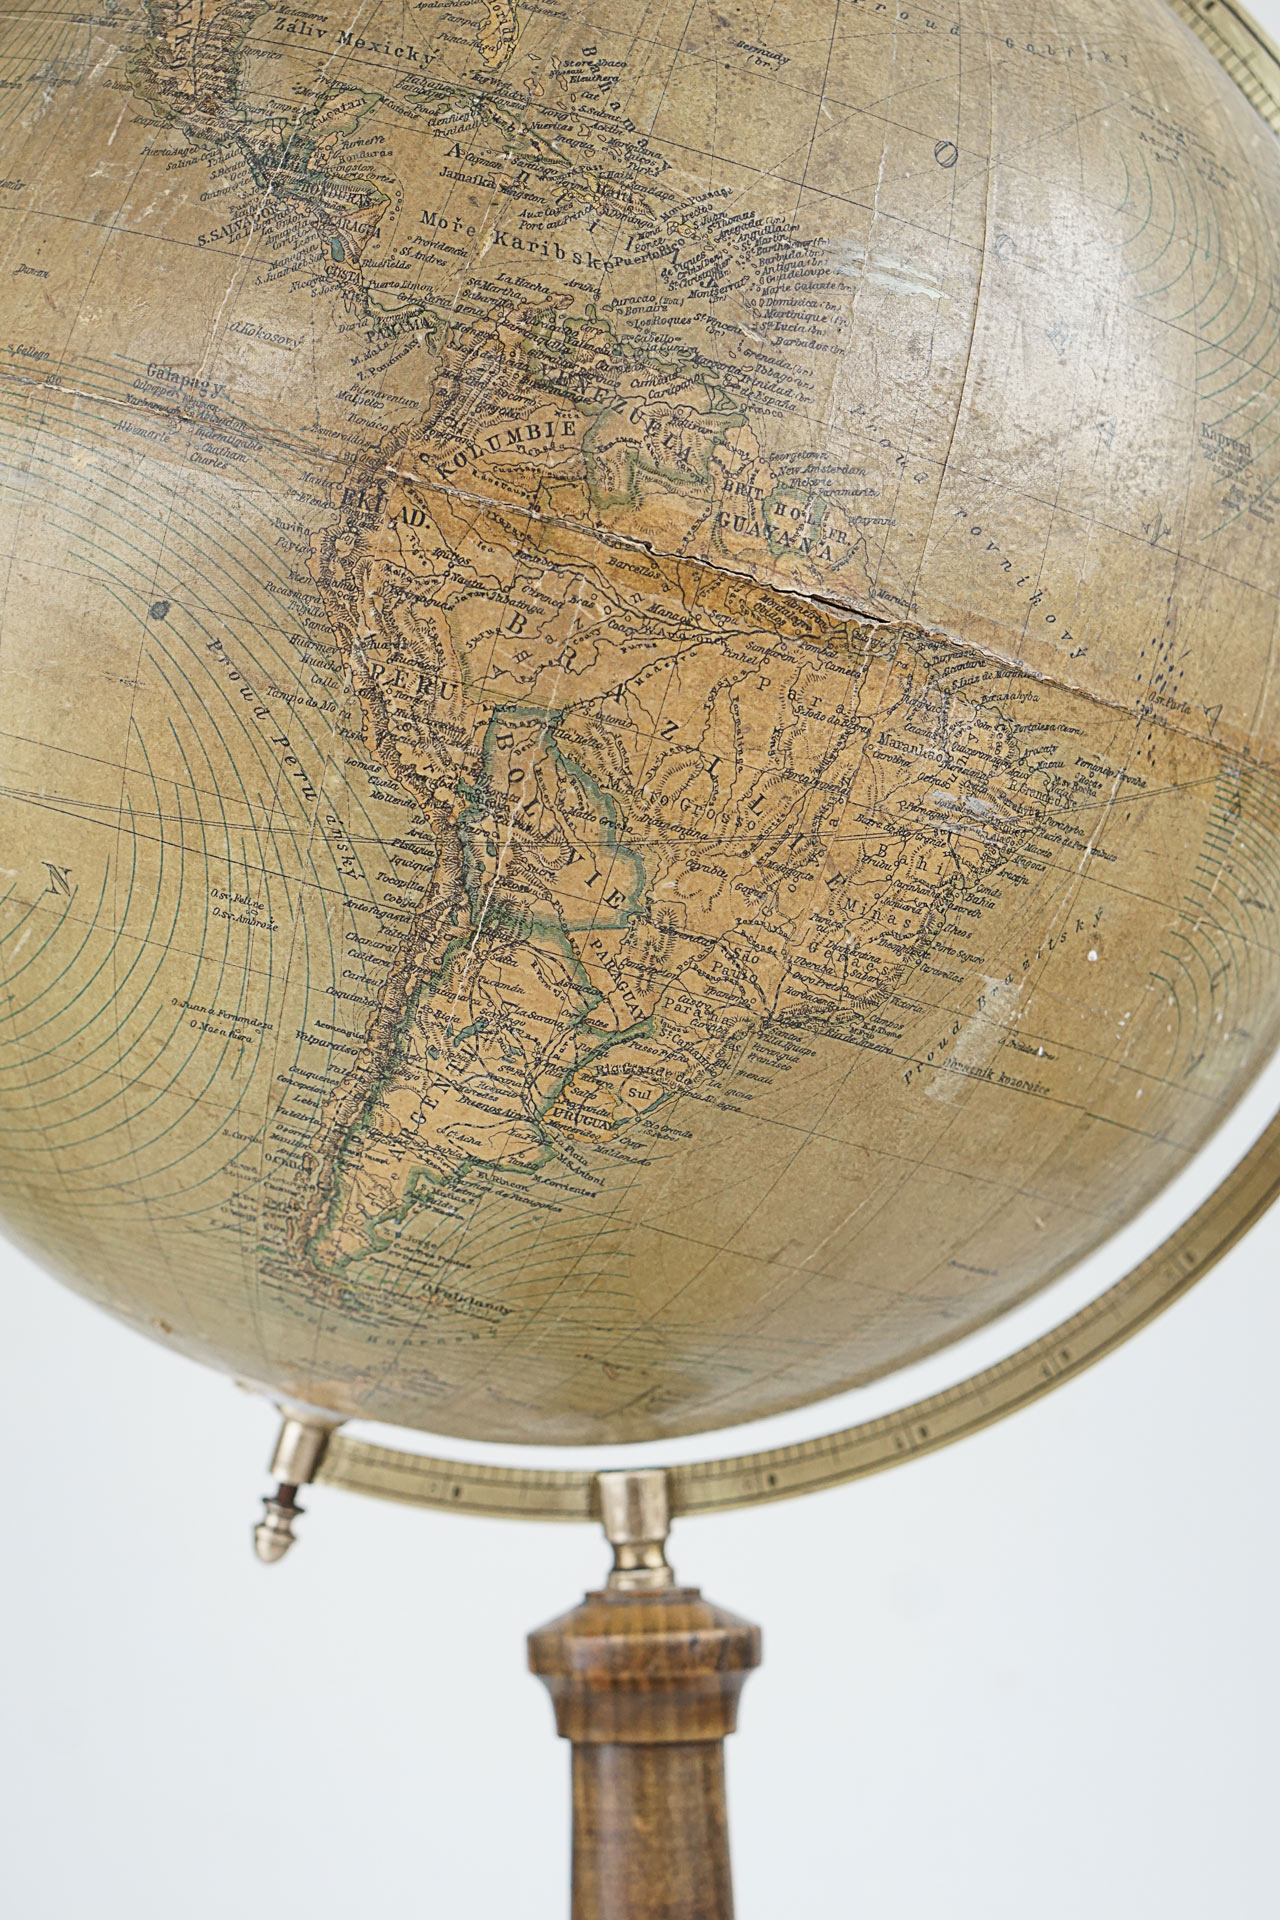 Rare Globe with New Political Division by Logia